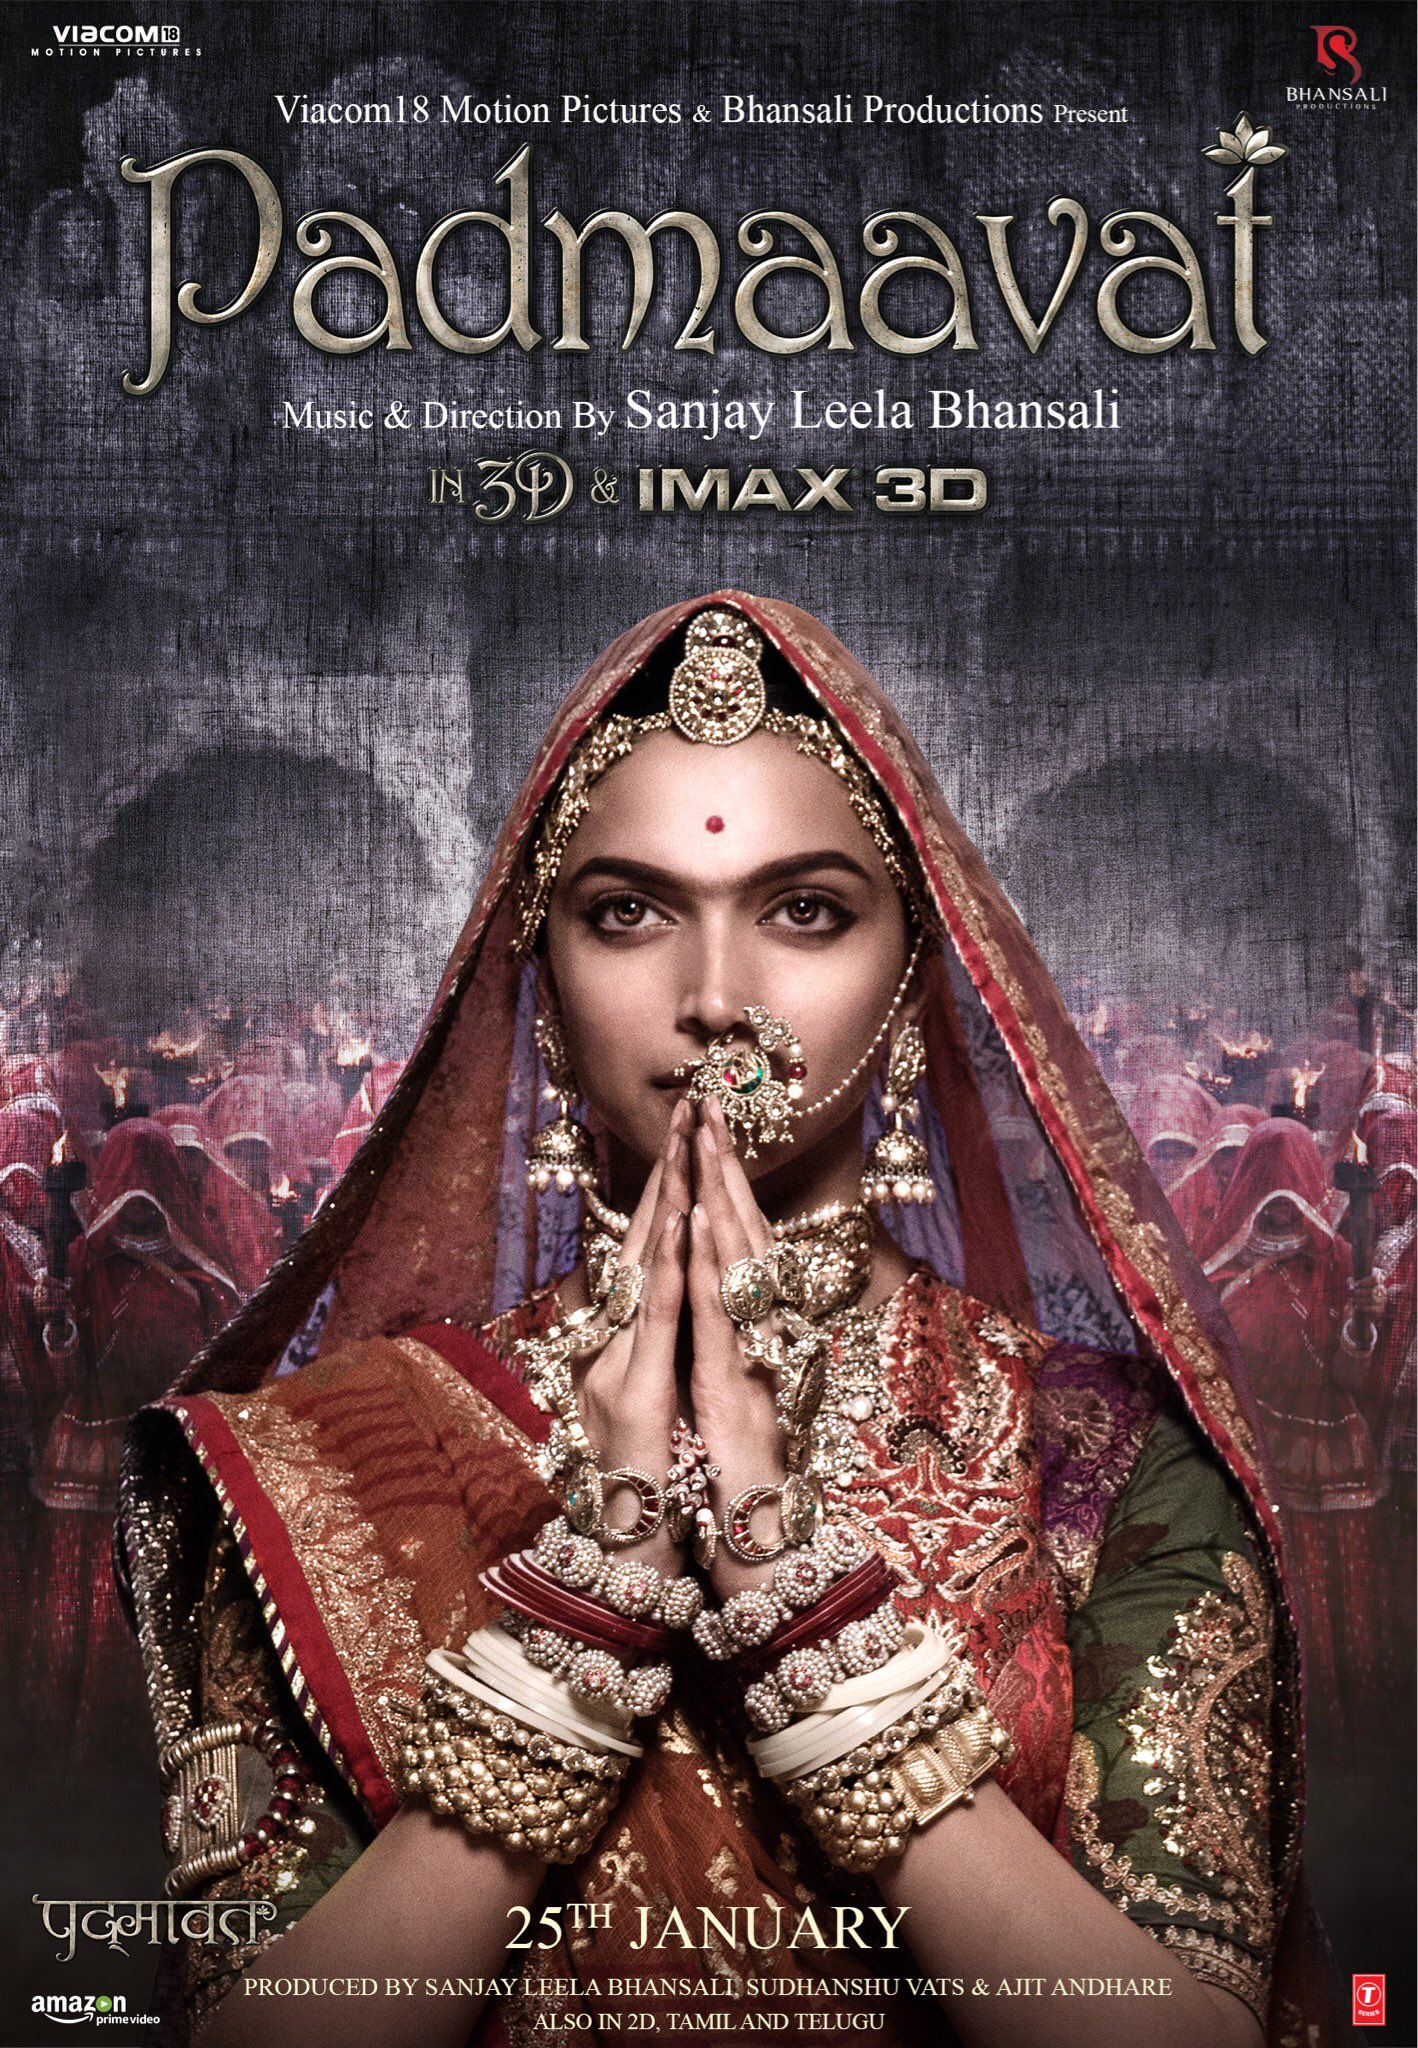 What does the movie Padmaavat teach us about entrepreneurship in India?